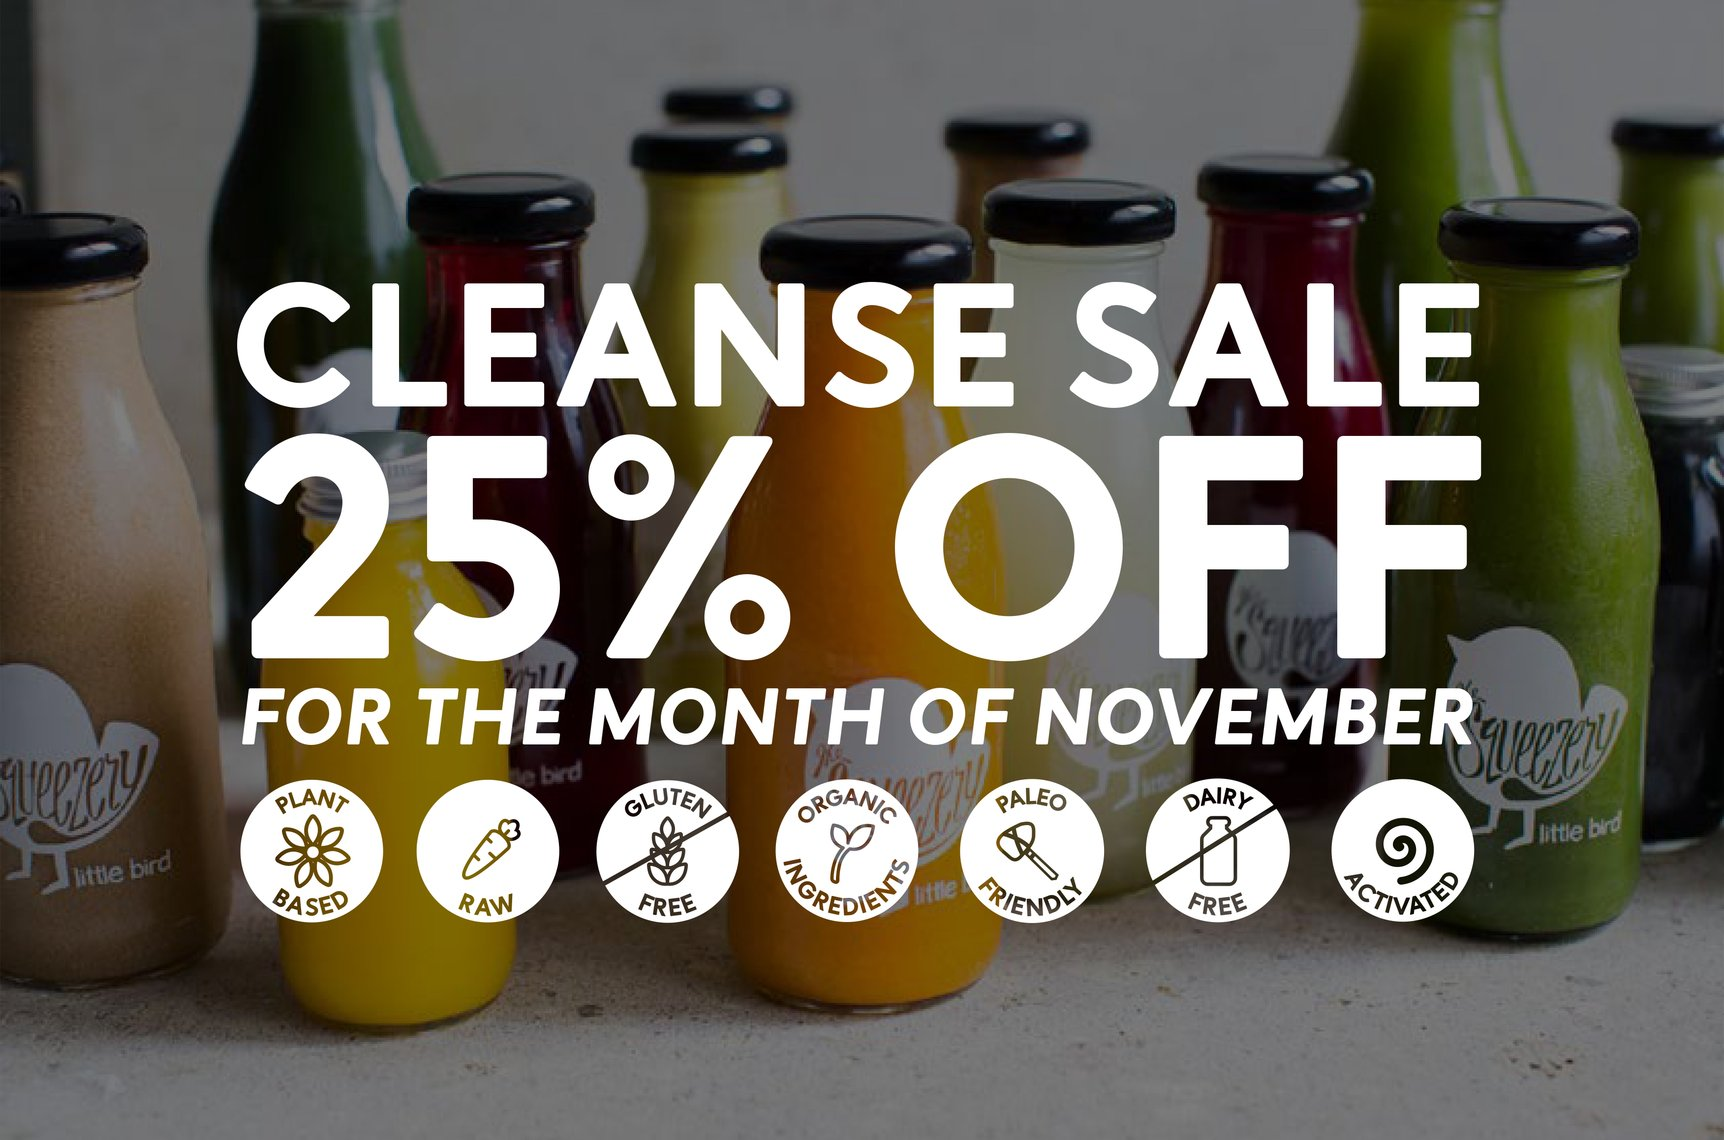 Little Bird Juice Cleanse 25% Off